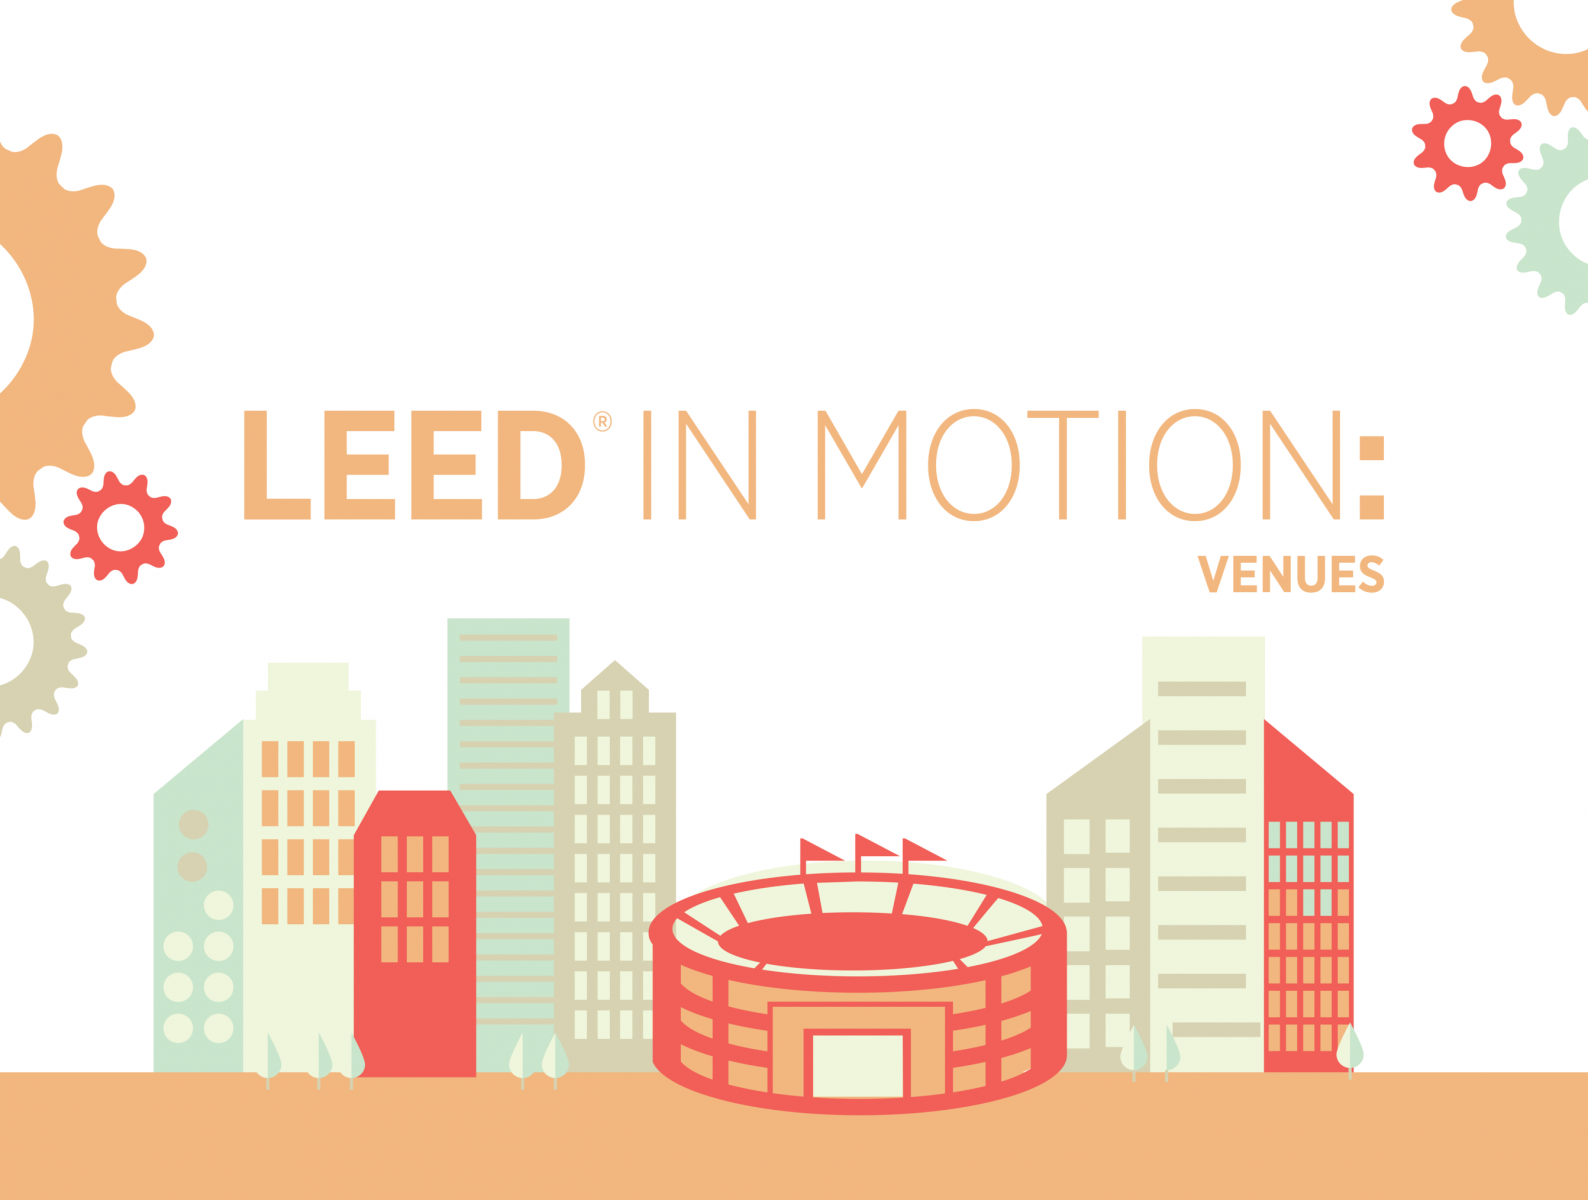 New report reveals venues across the globe are embracing leed new report reveals venues across the globe are embracing leed green building xflitez Images